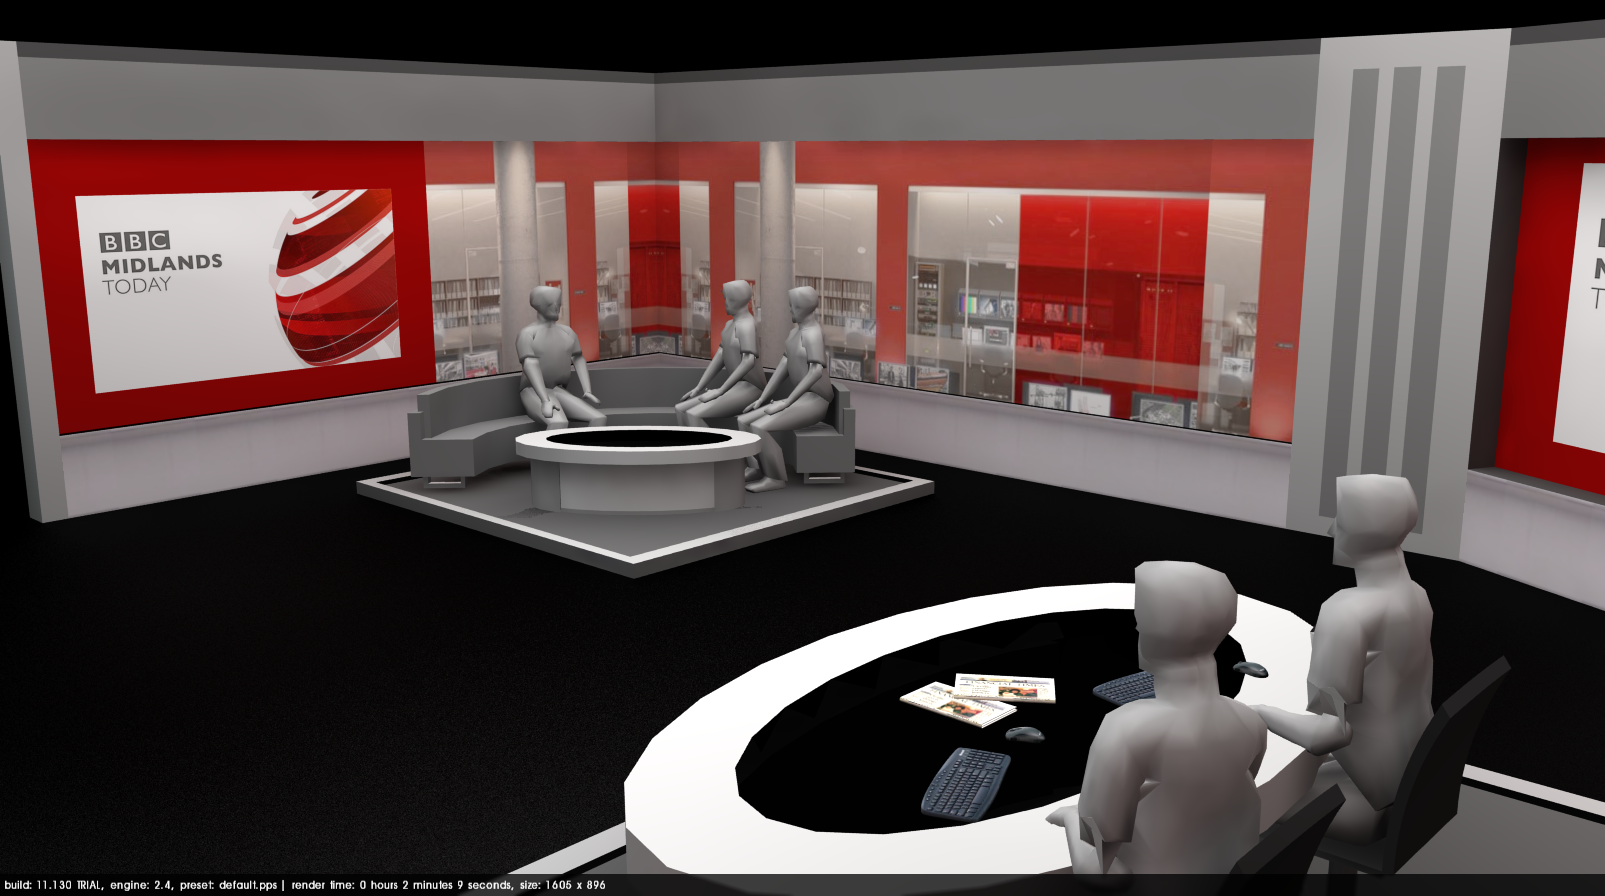 BBC Midlands Today New Studio Set Possible Idea TV Forum